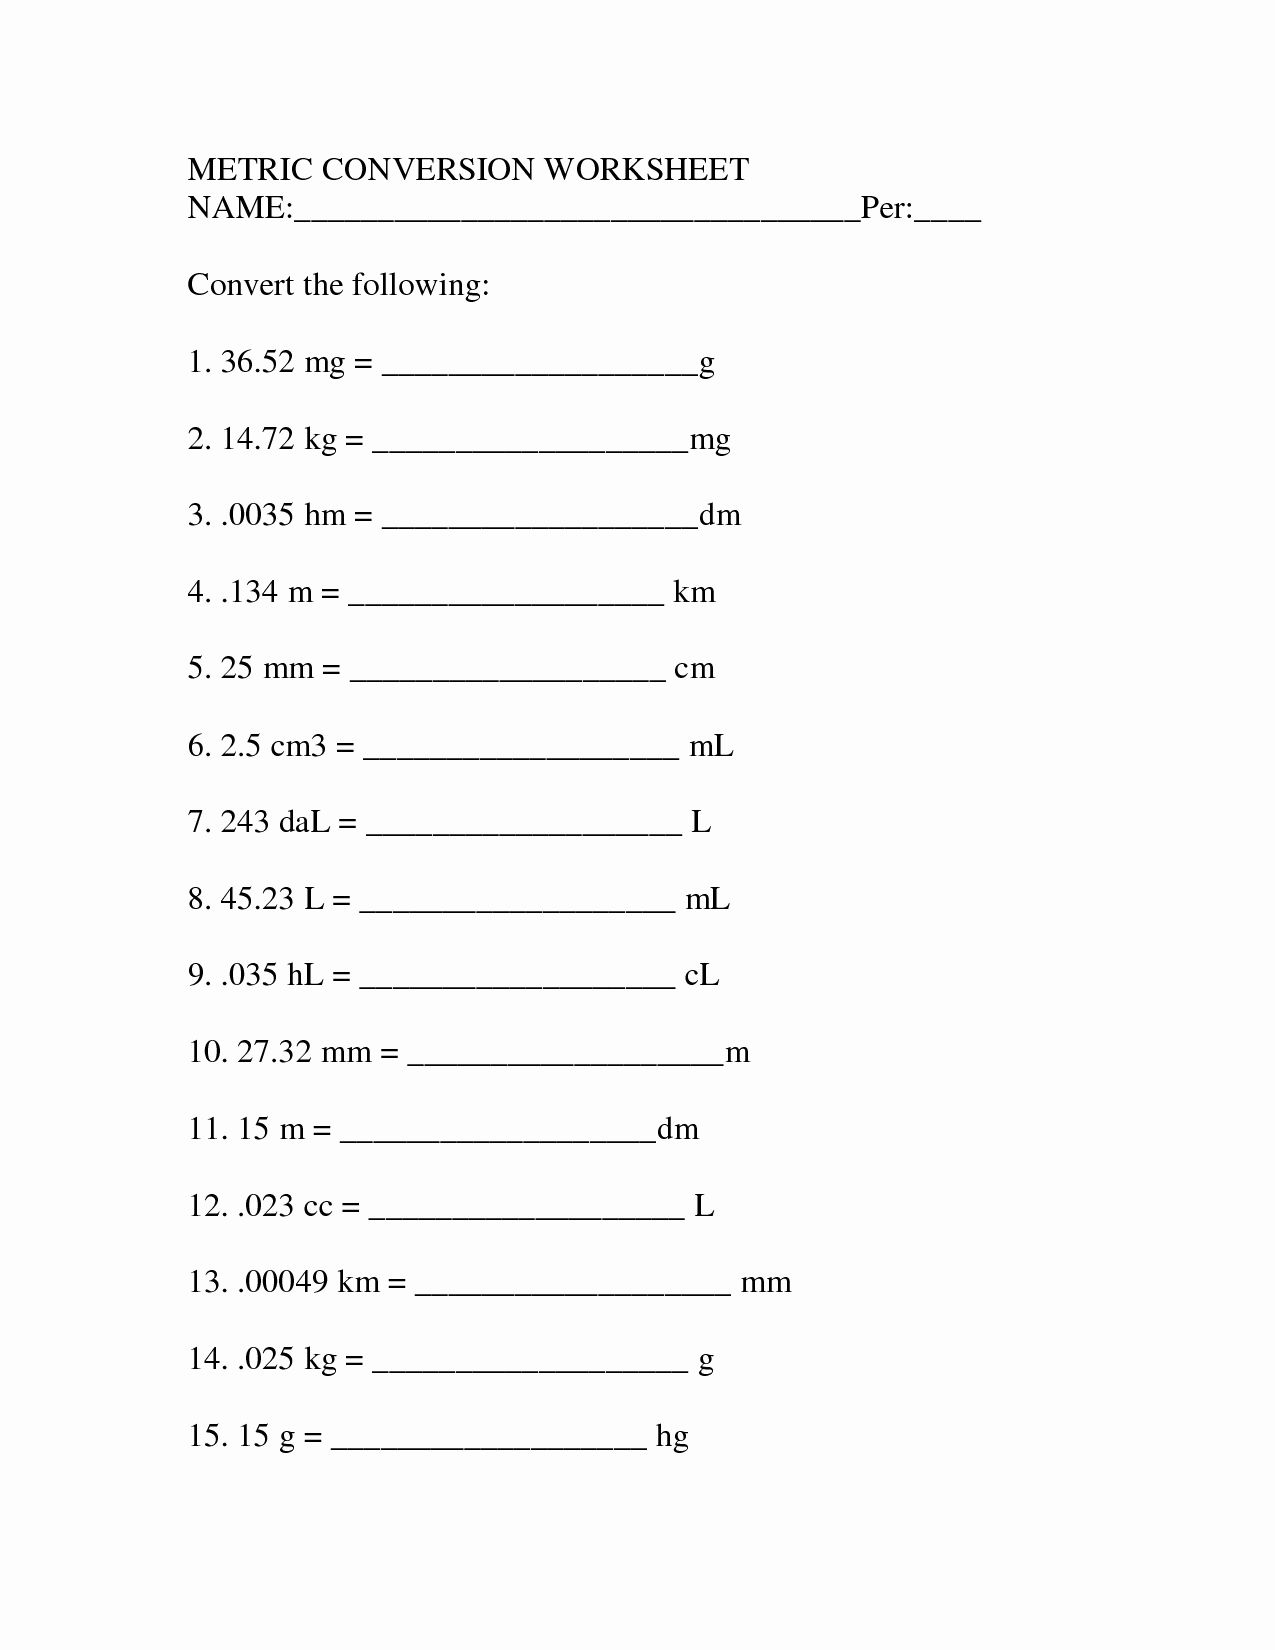 English To Metric Conversion Worksheet Lovely 12 Best Of